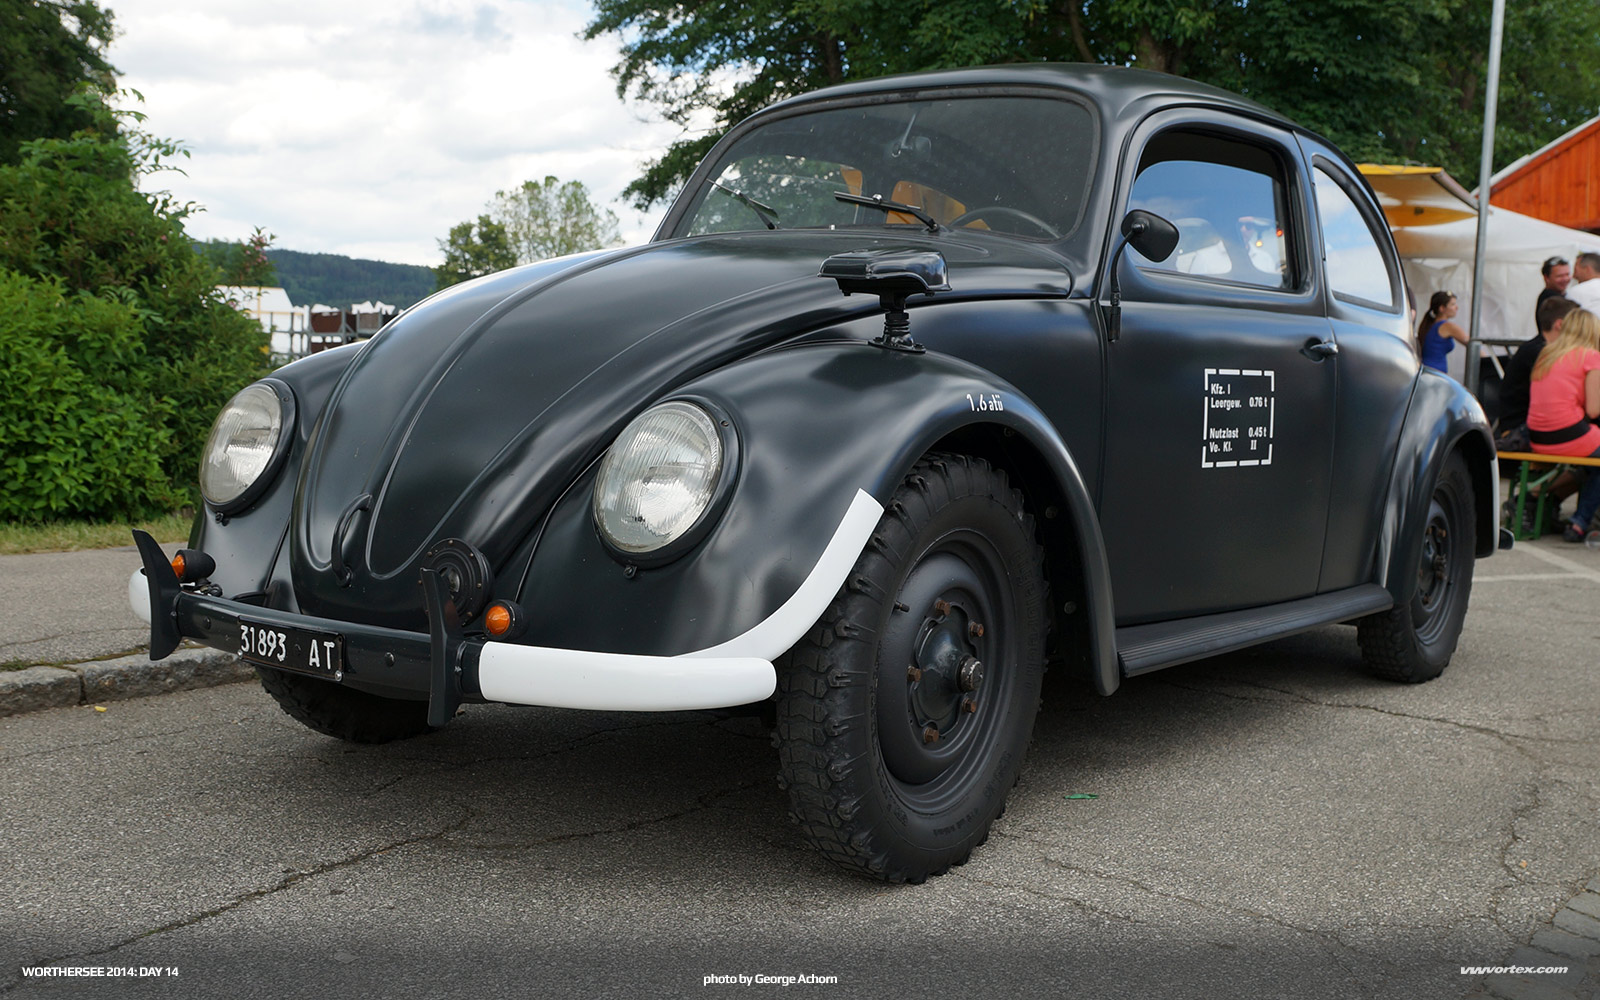 2014-Worthersee-Day-14-VWvortex-1249